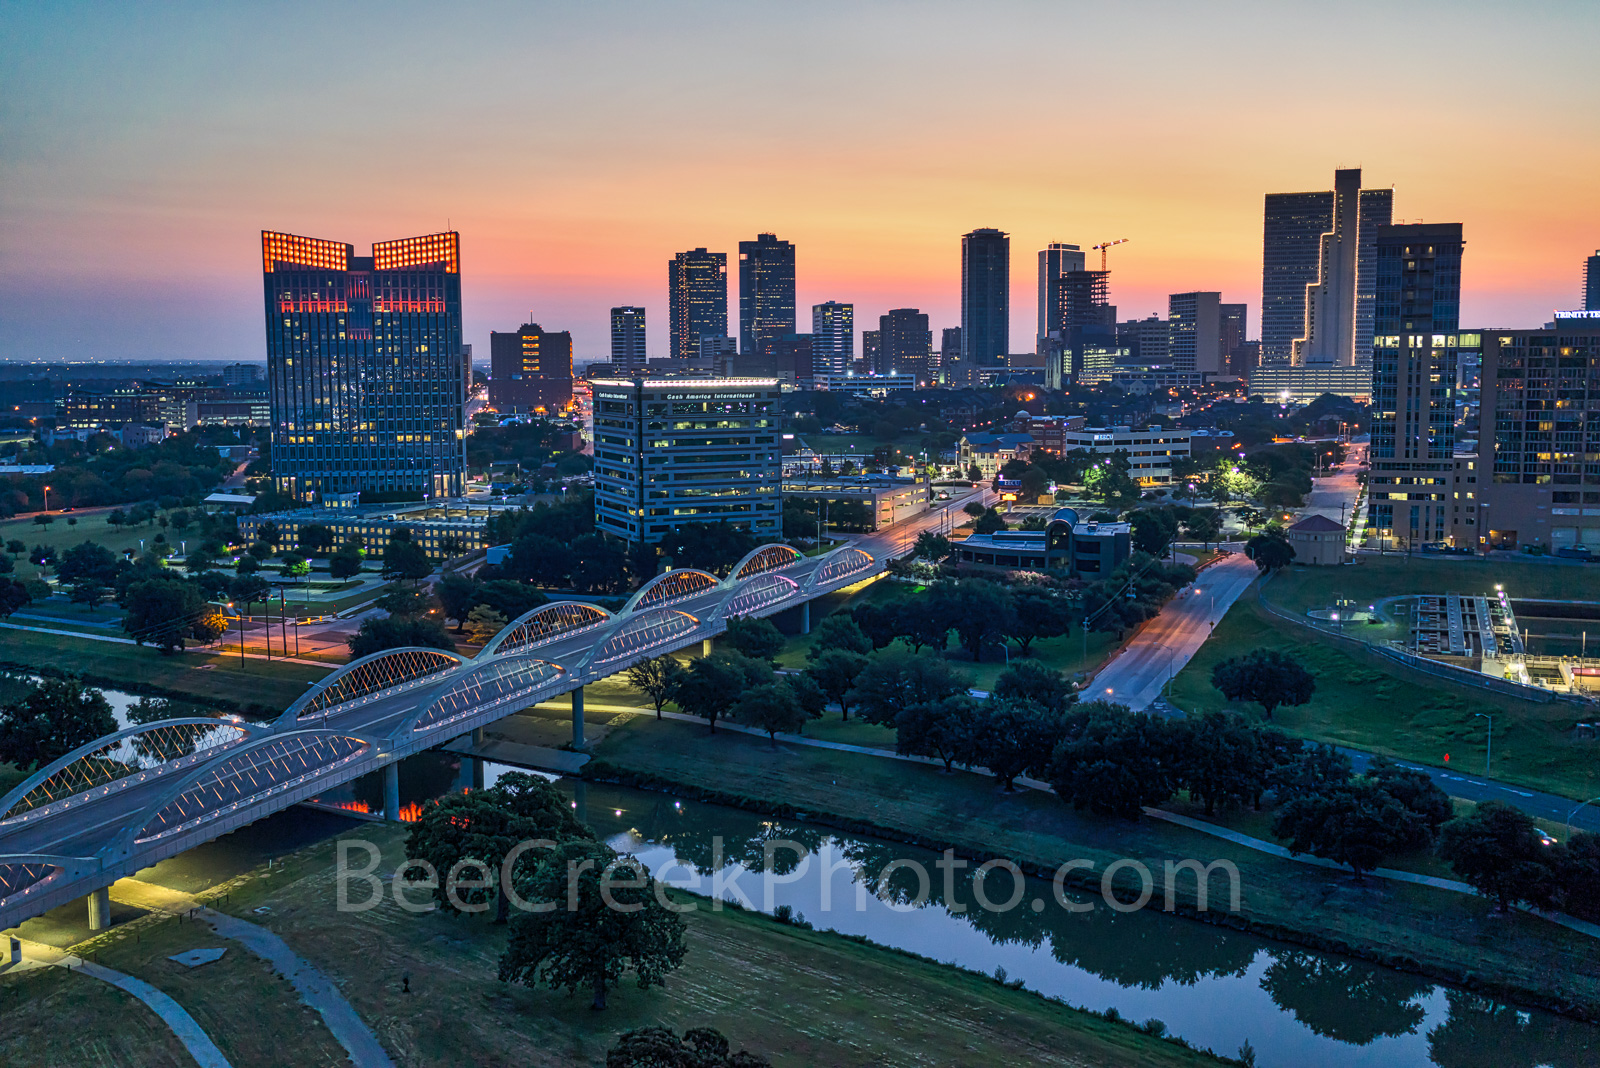 Fort Worth, Skyline, skylines, cityscape, cityscapes, Ft. Worth, downtown, sunrise, pink, seventh street bridge, 7th street bridge, Trinity river, Texas, city,, photo